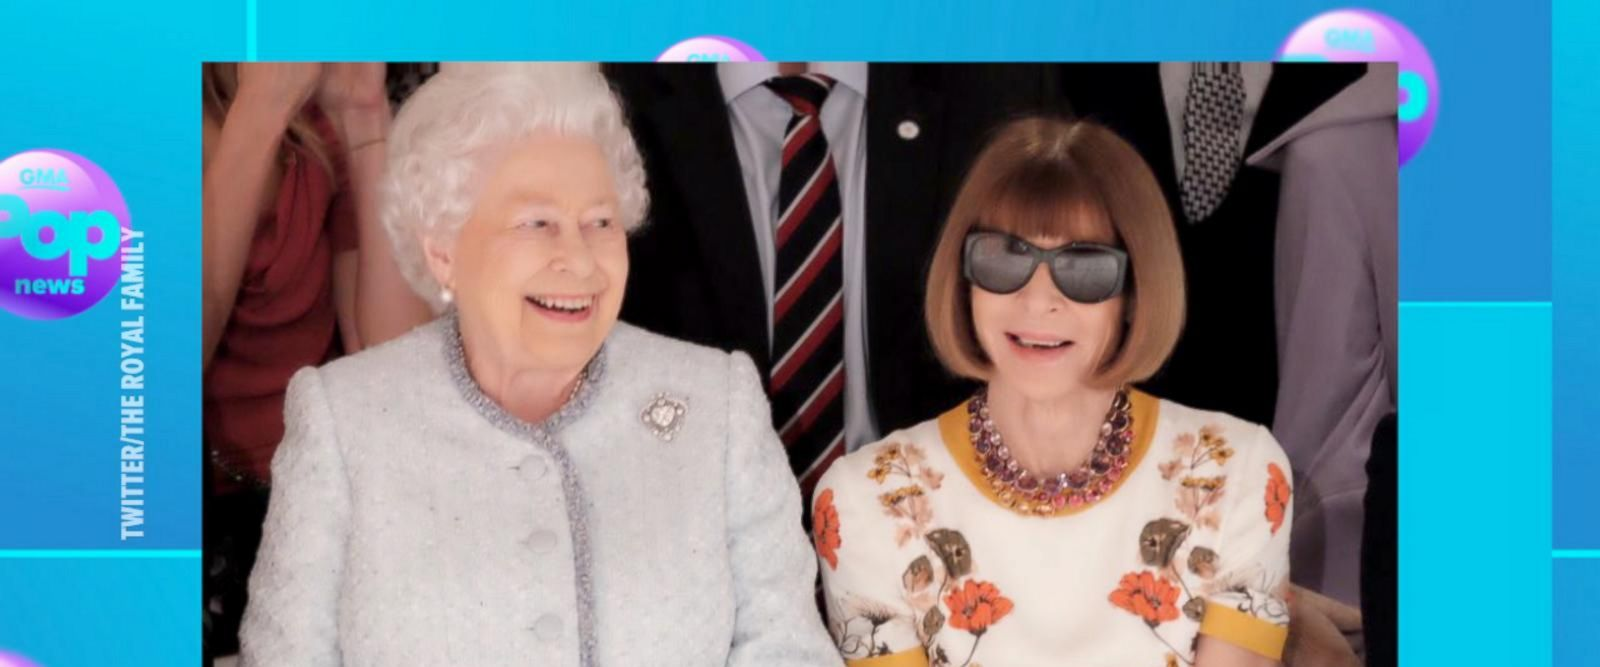 VIDEO: Queen Elizabeth II makes fashion week debut with Vogue's Anna Wintour